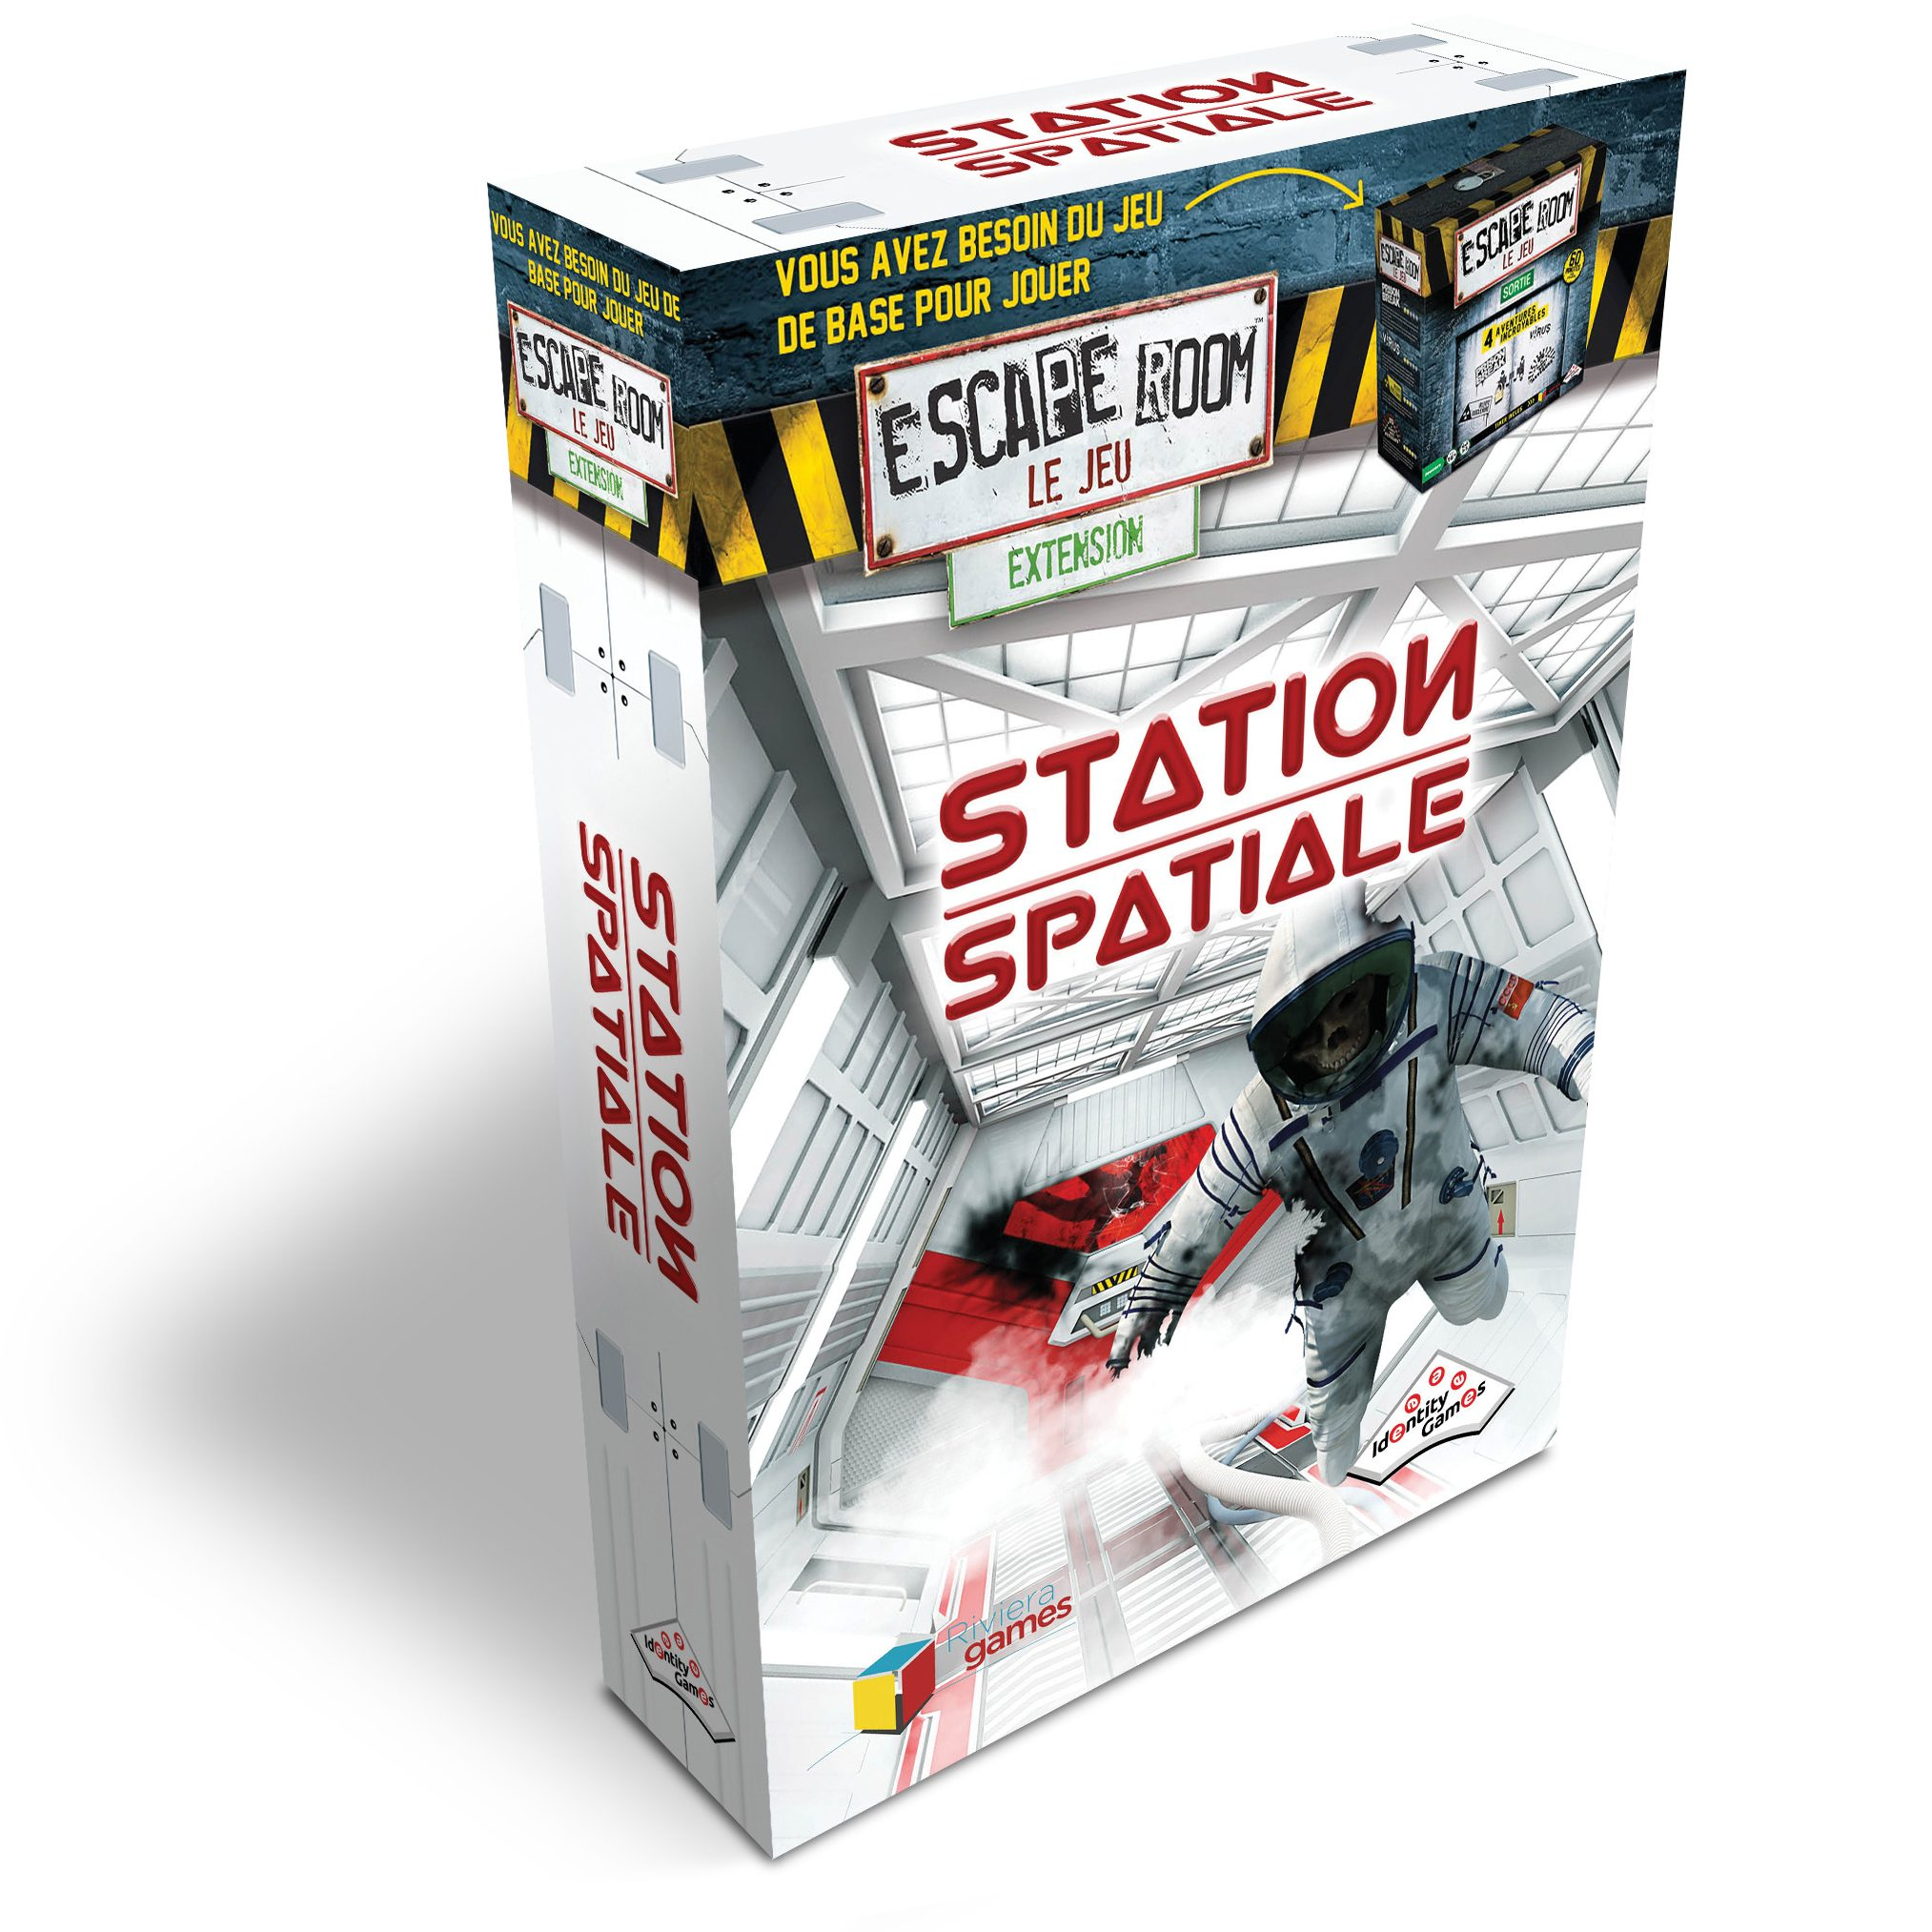 Escape Room Extension - Station spatiale | 21,99$